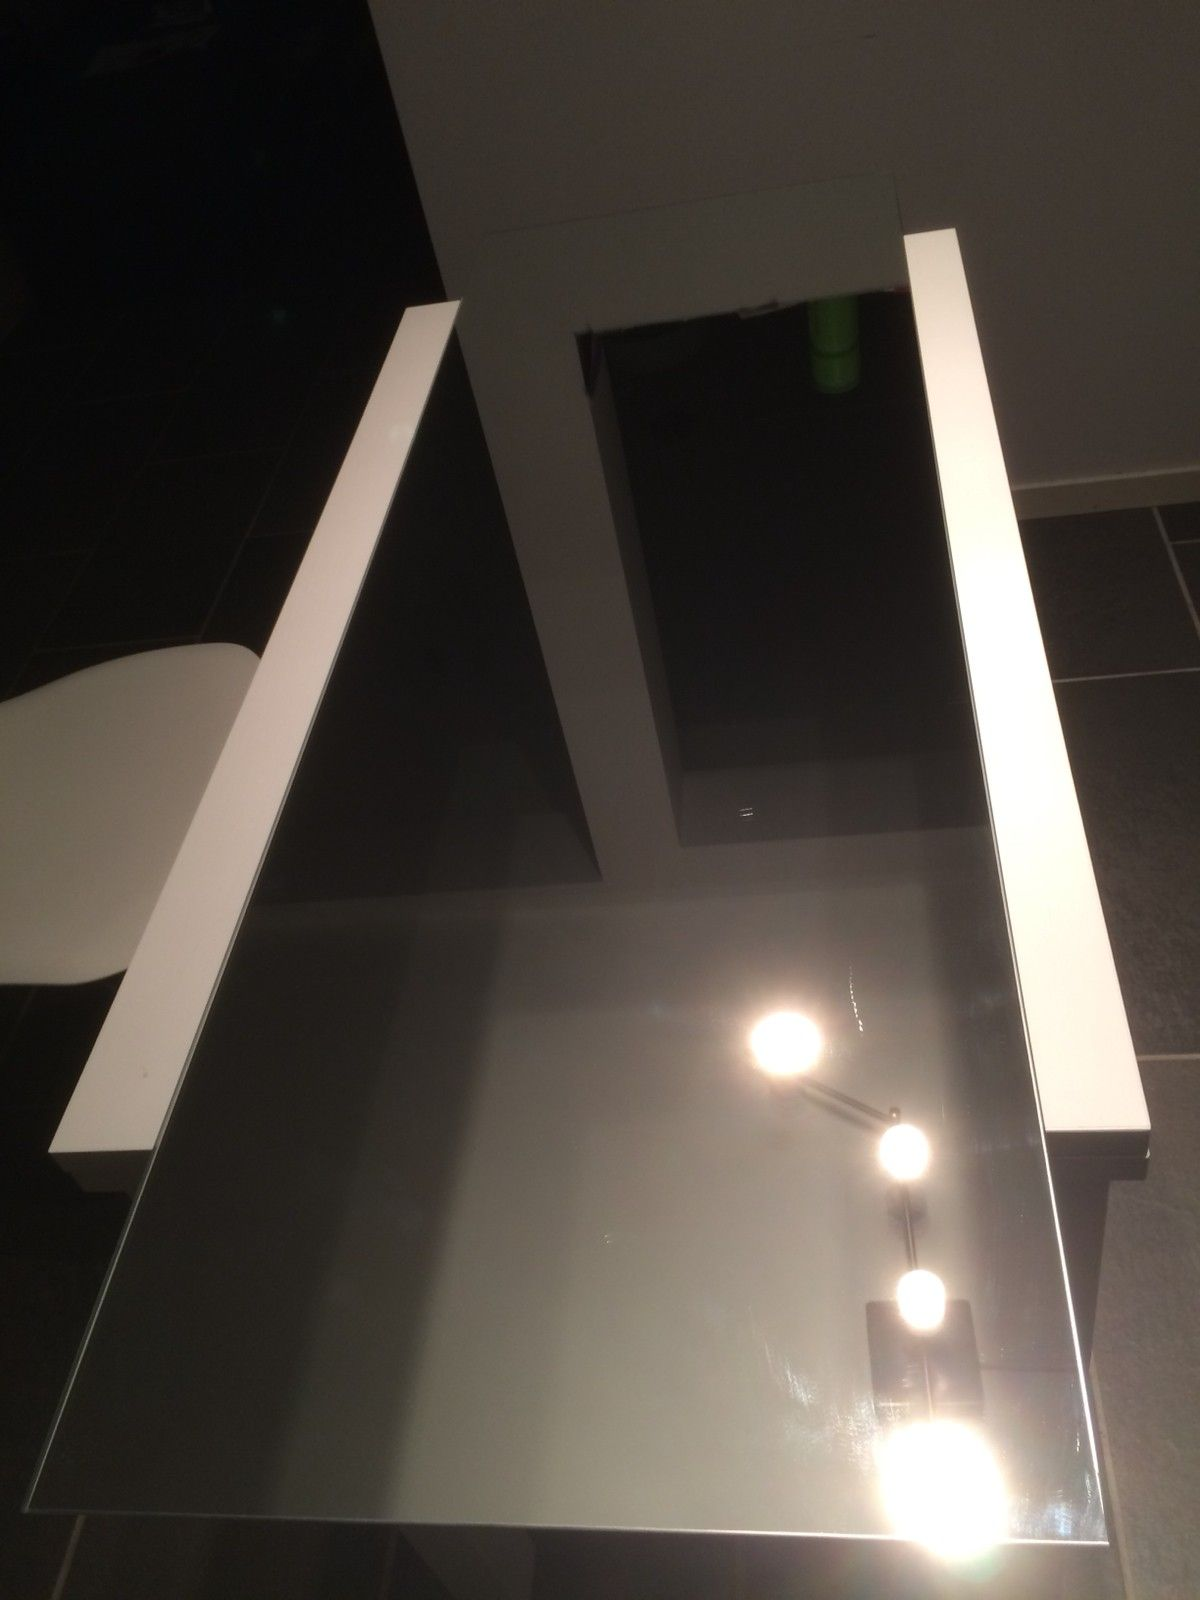 Speil 1m • 30cm - Bergen  - 1m • 30cm mirror in very good condition, comes with screws and plastic holders for the wall. - Bergen